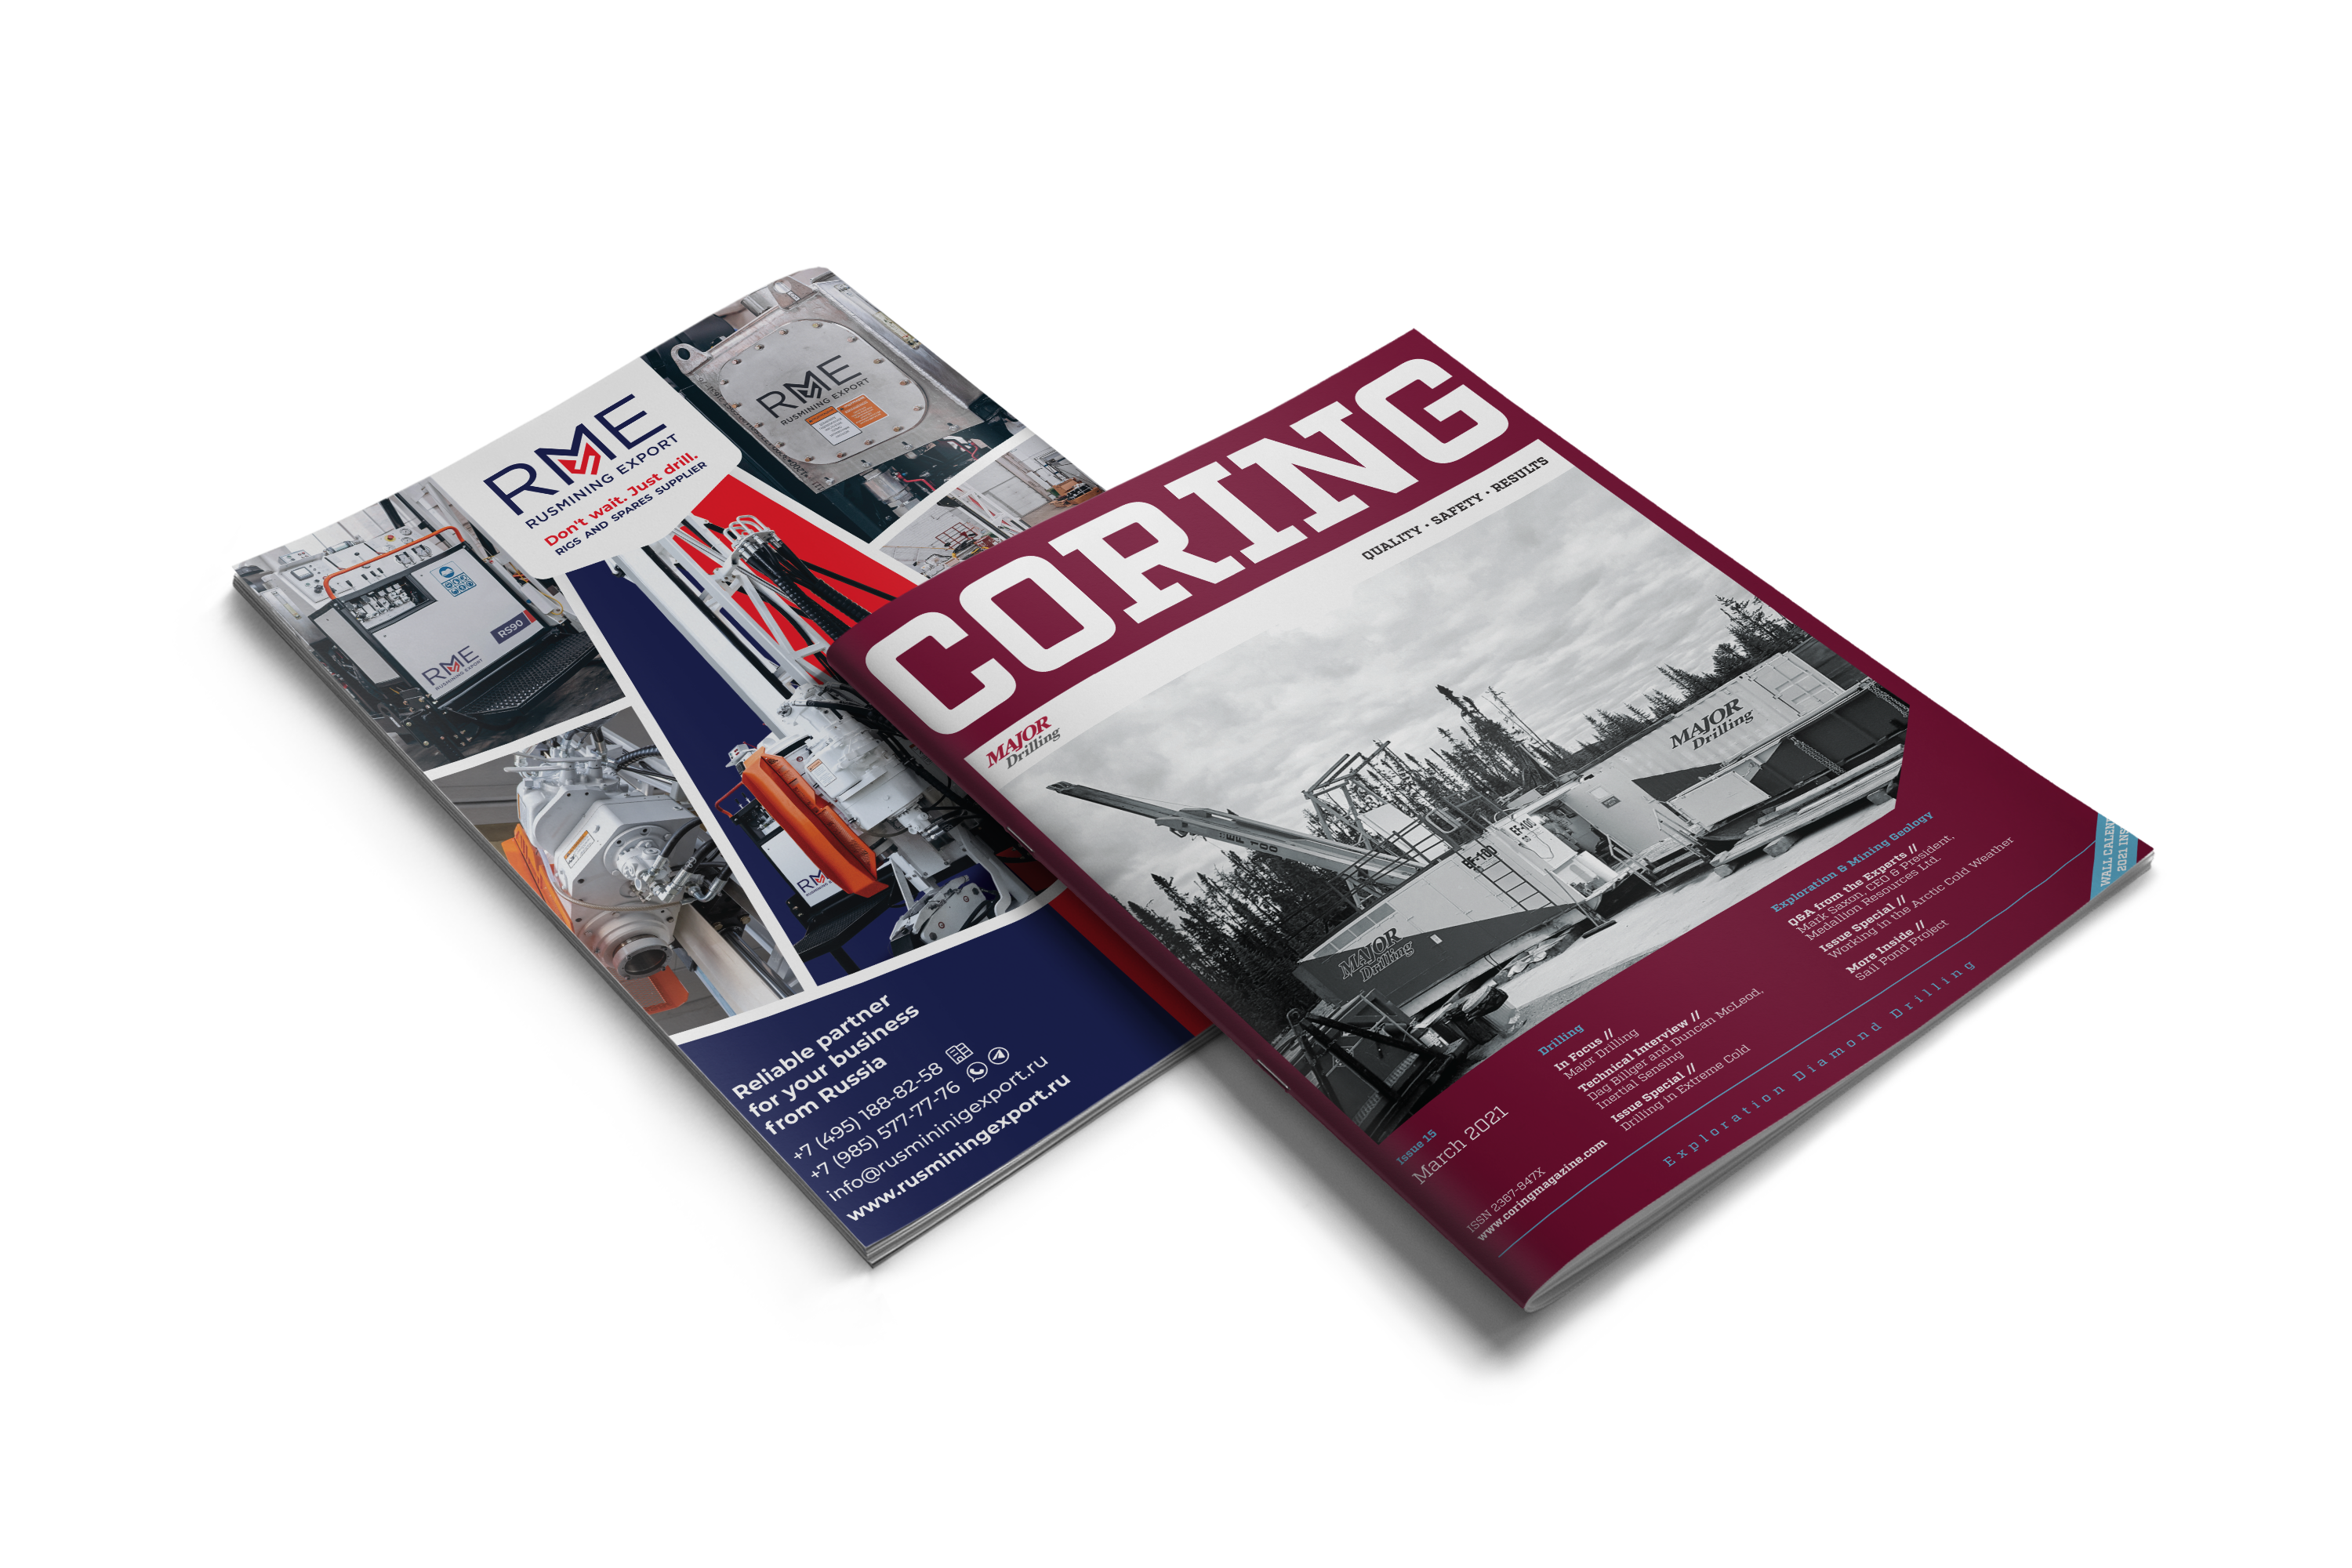 Coring issue preview